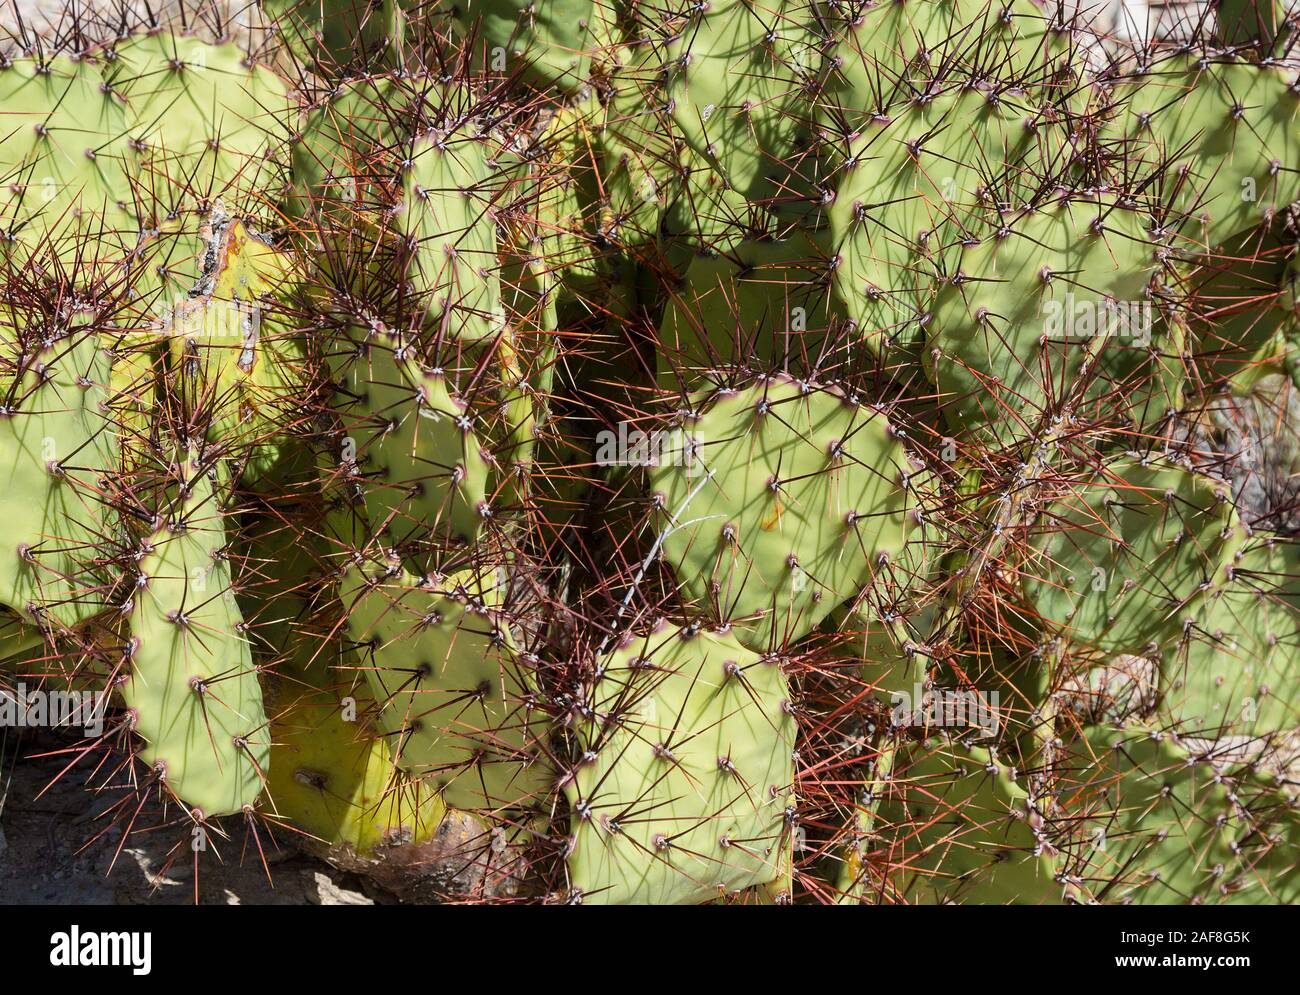 10+ seeds Delicious Fruits extreme hardy cactus Desert Prickly Pear